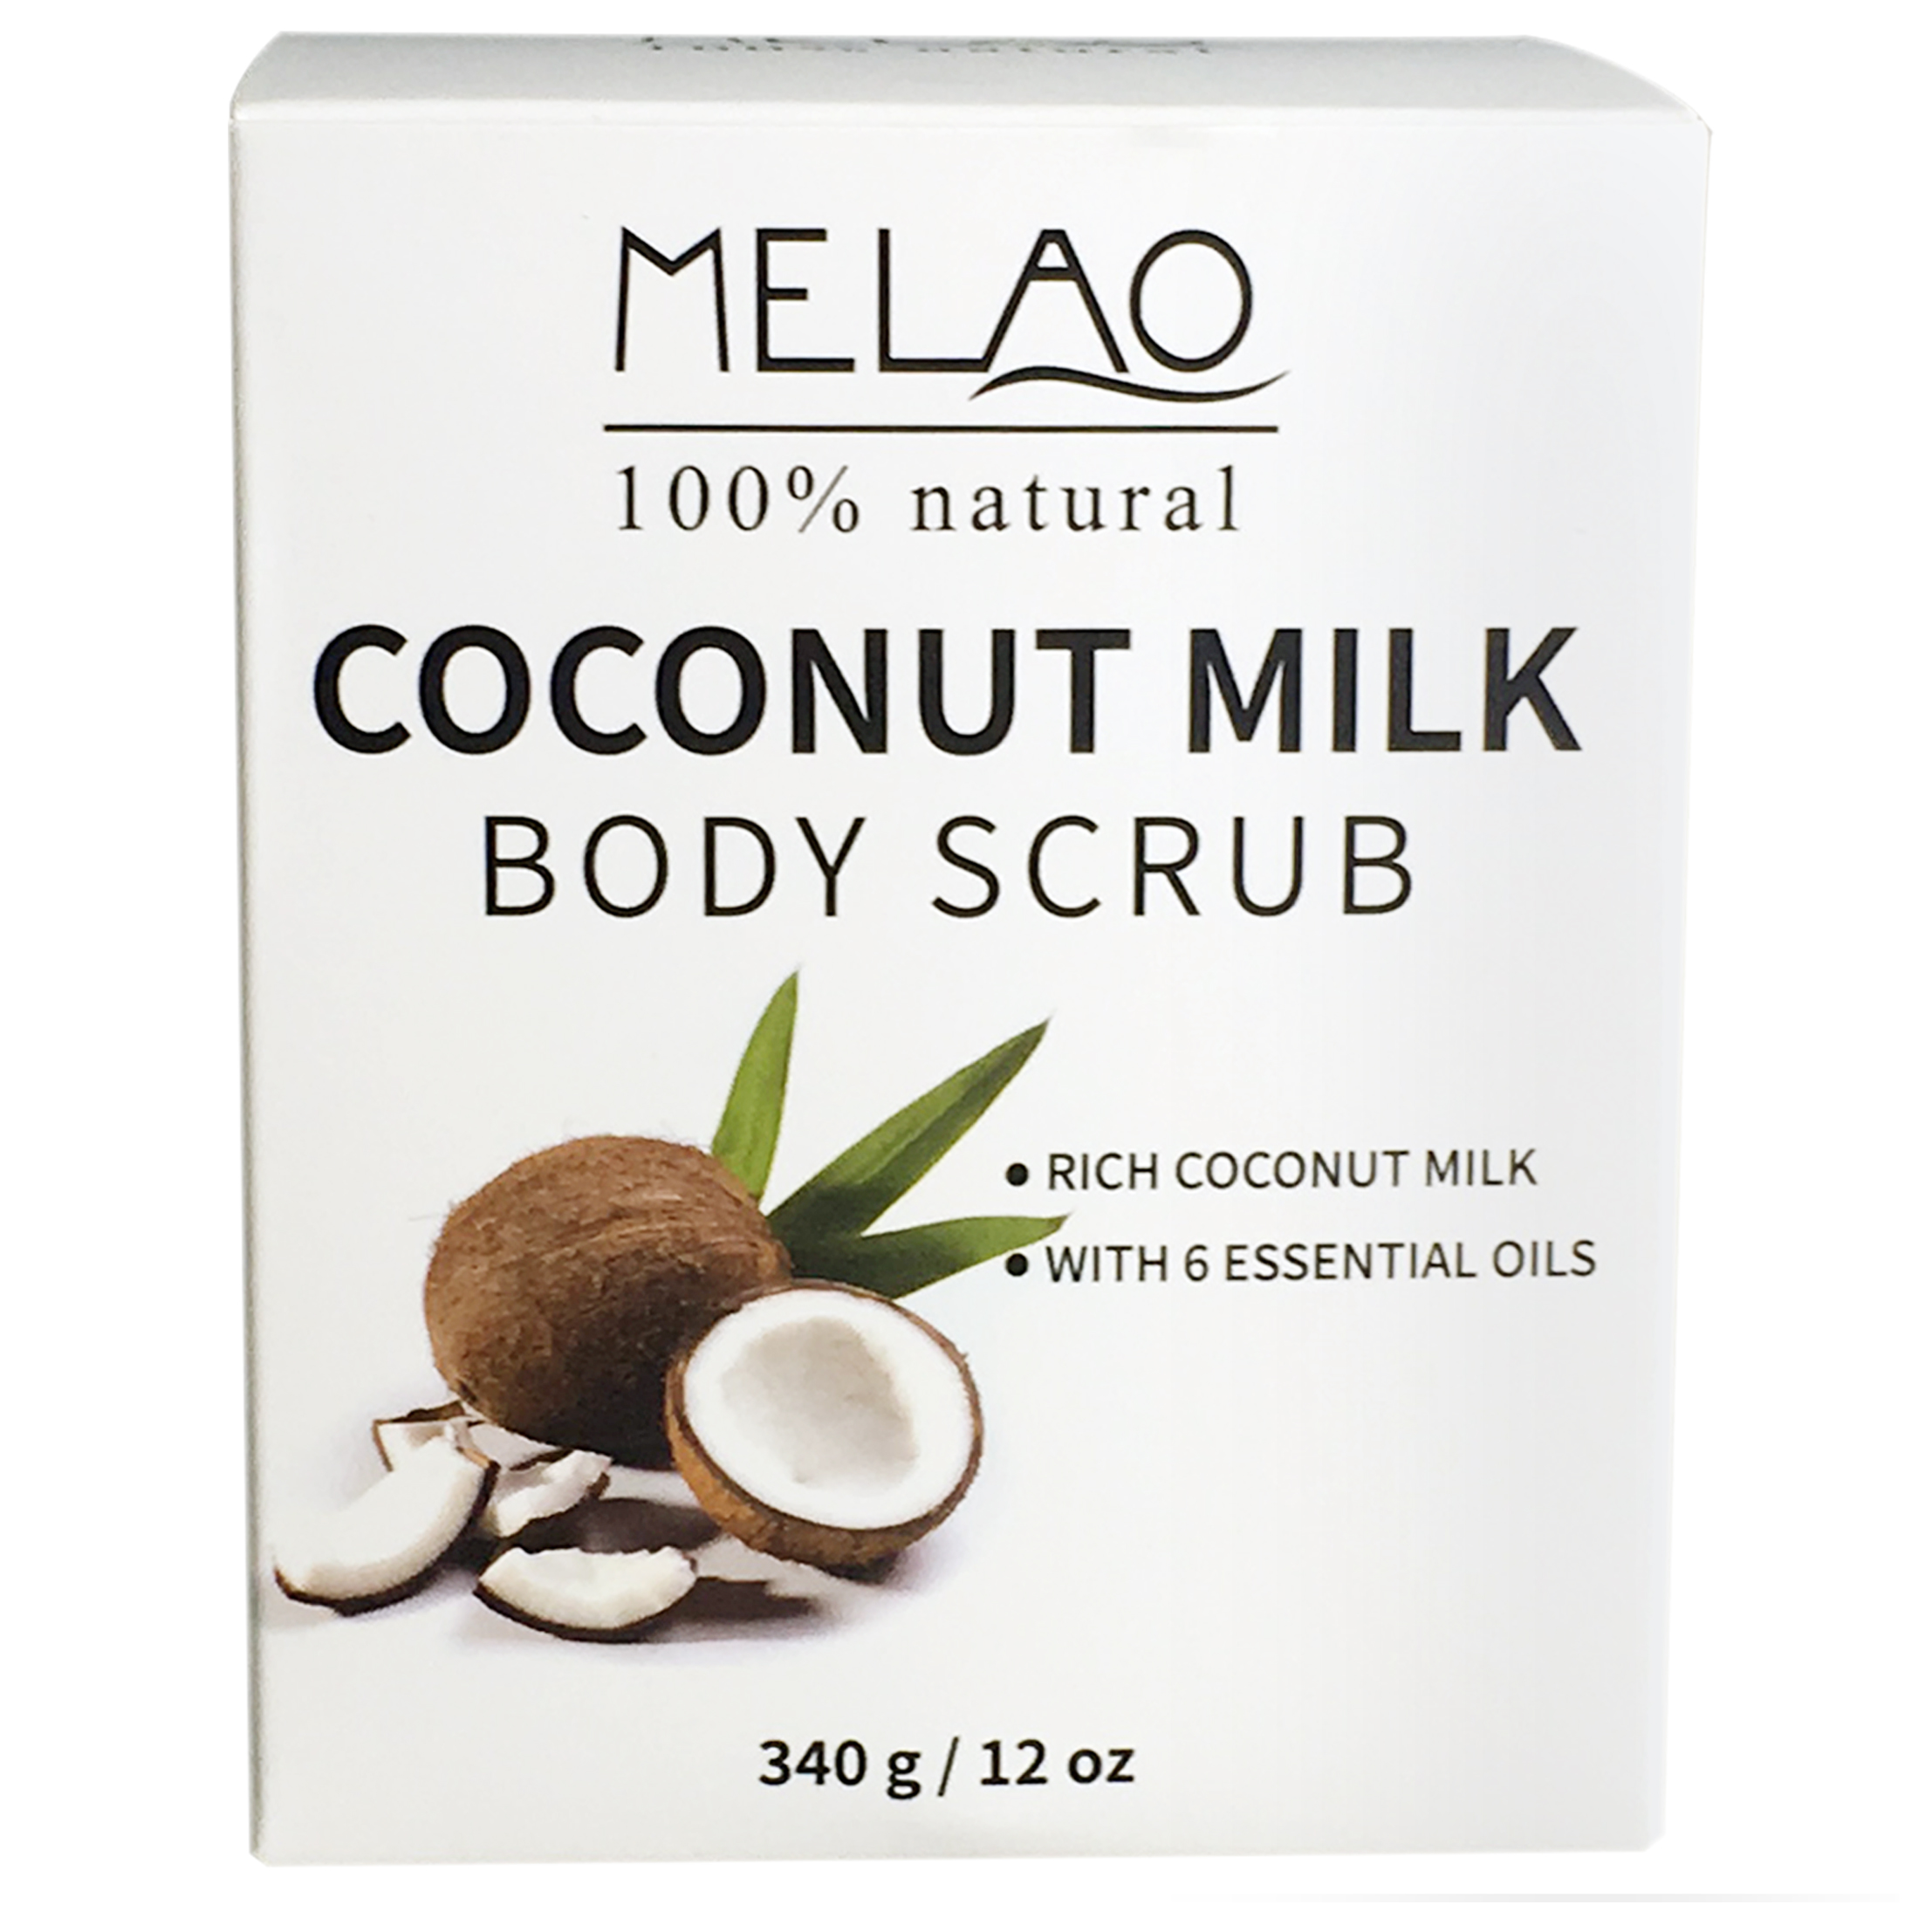 MELAO 340g/12oz 100% Natural Arabica Coconut Milk Body Scrub with Dead Sea Salt, Almond Oil and Vitamin E 2